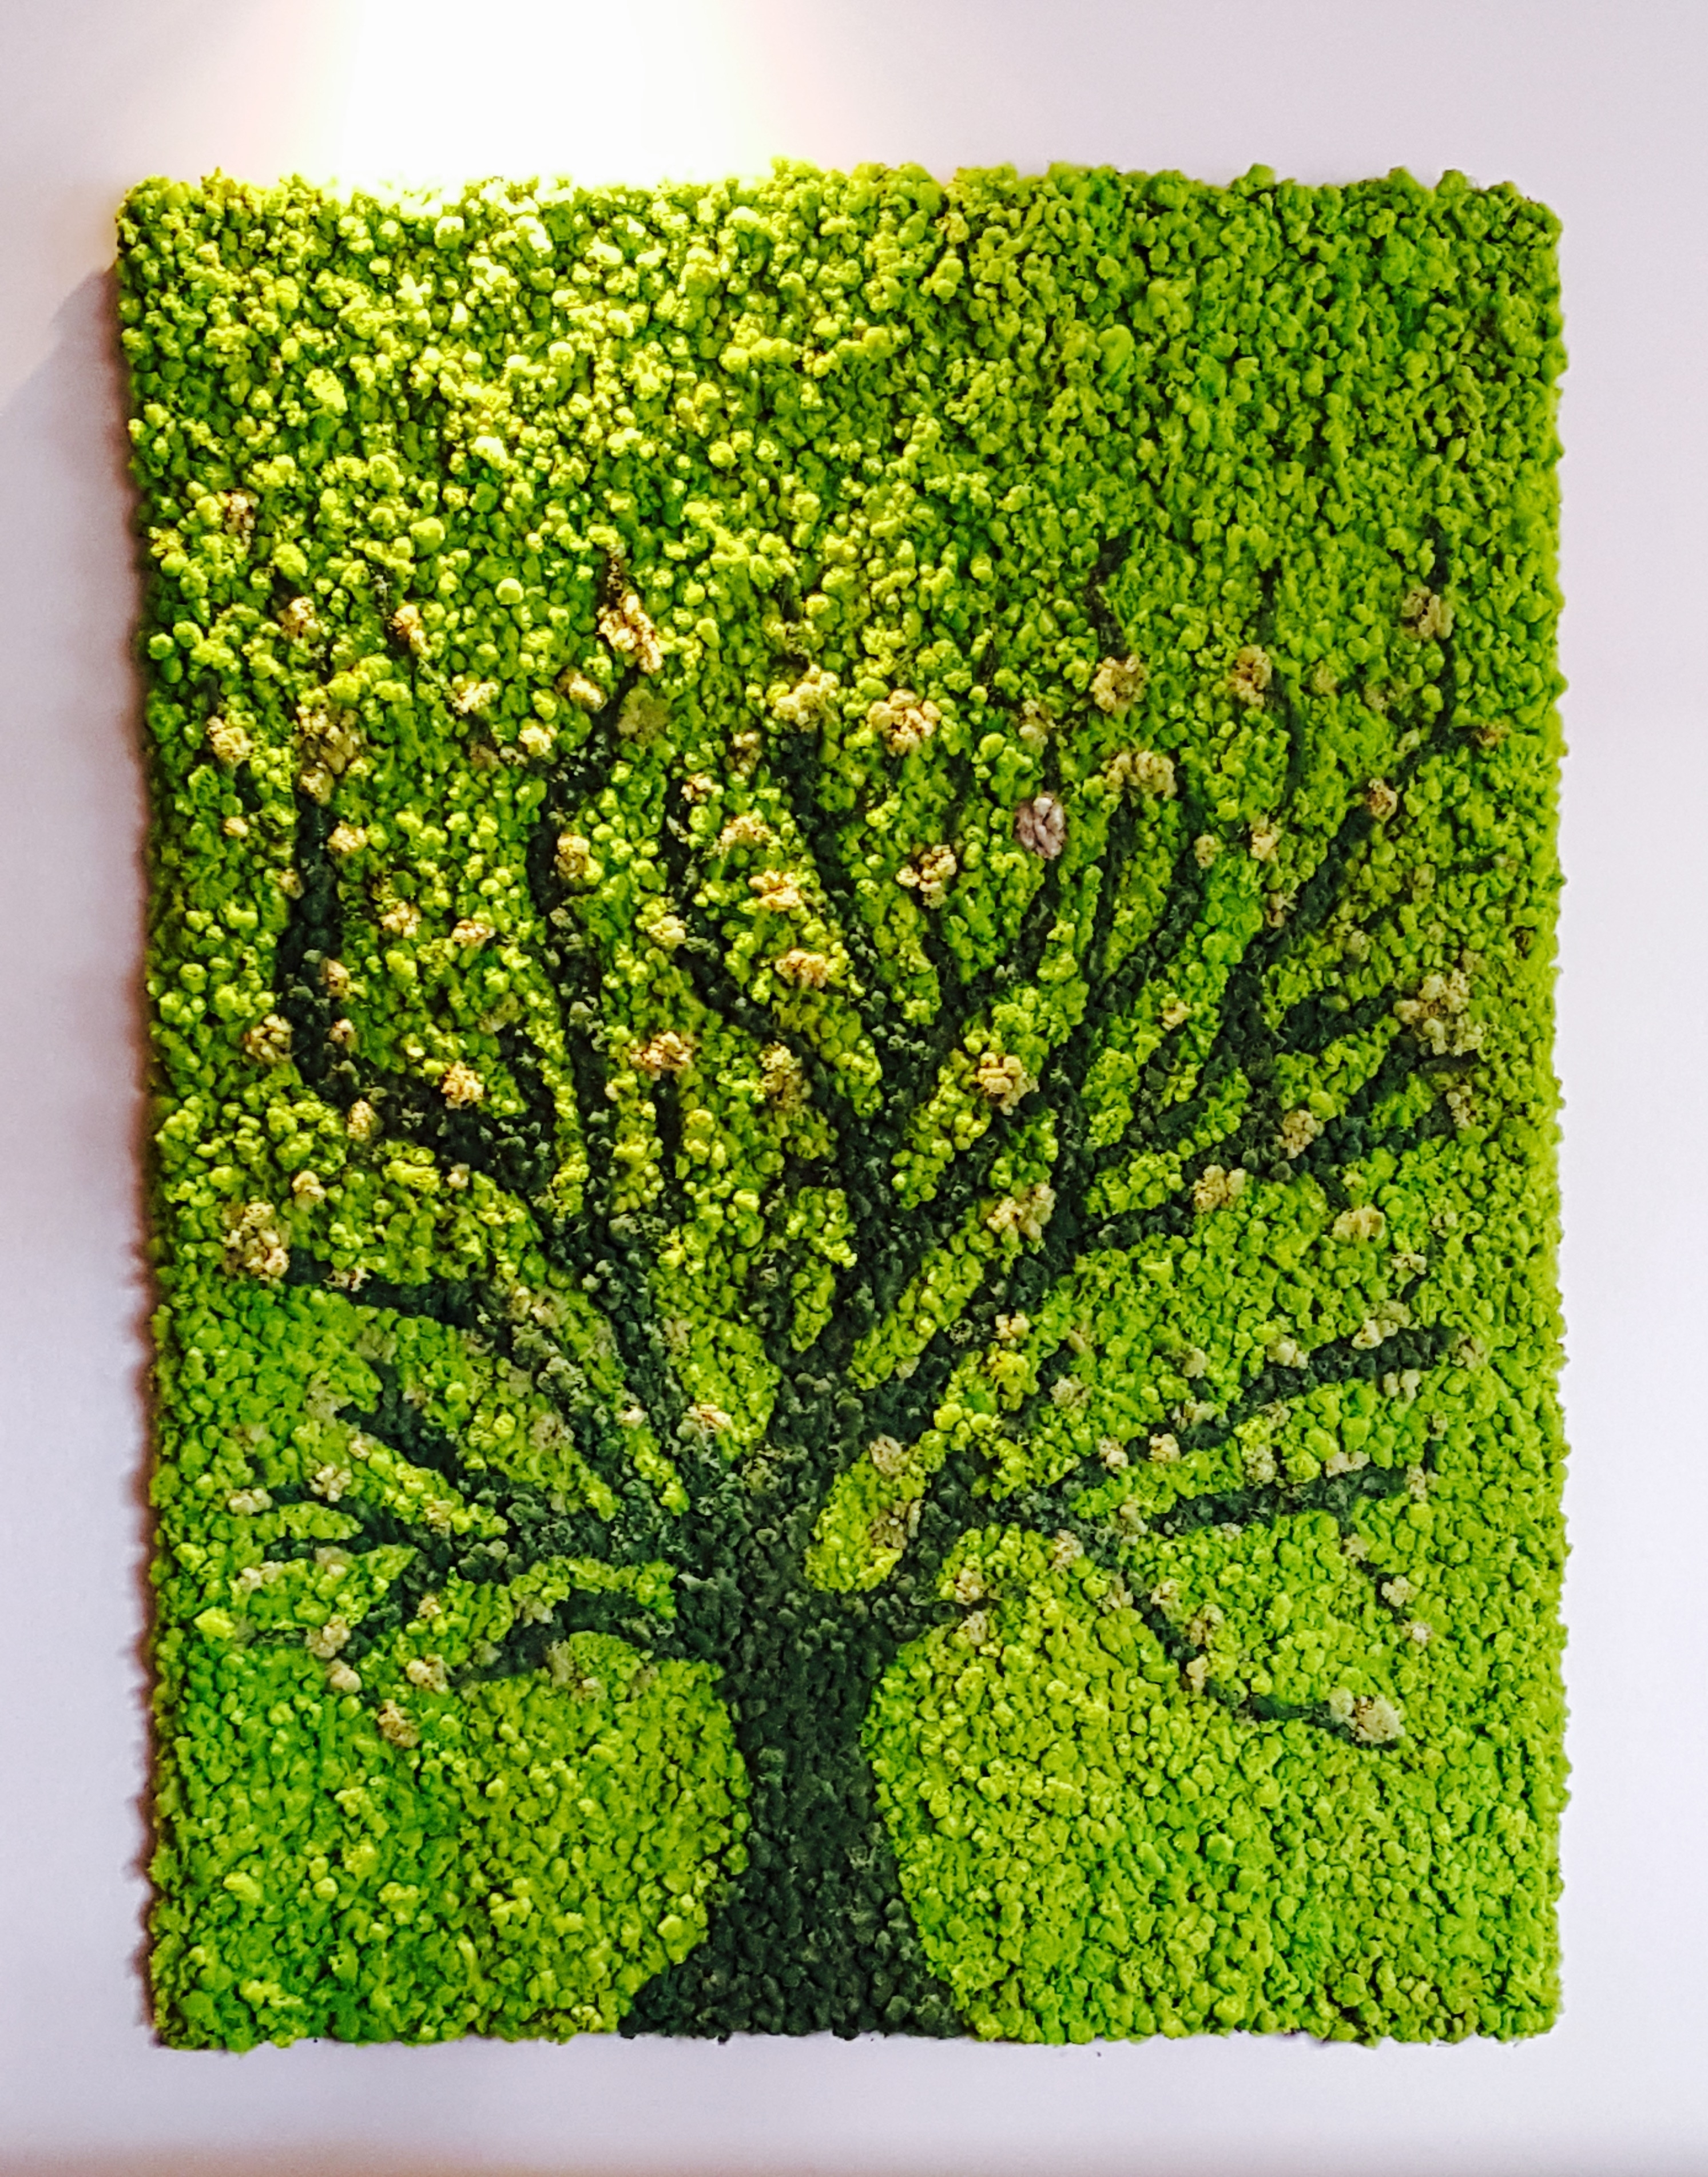 Moss Art Wall | Greenery Office Interiors Inside Most Popular Living Wall Art (View 4 of 20)